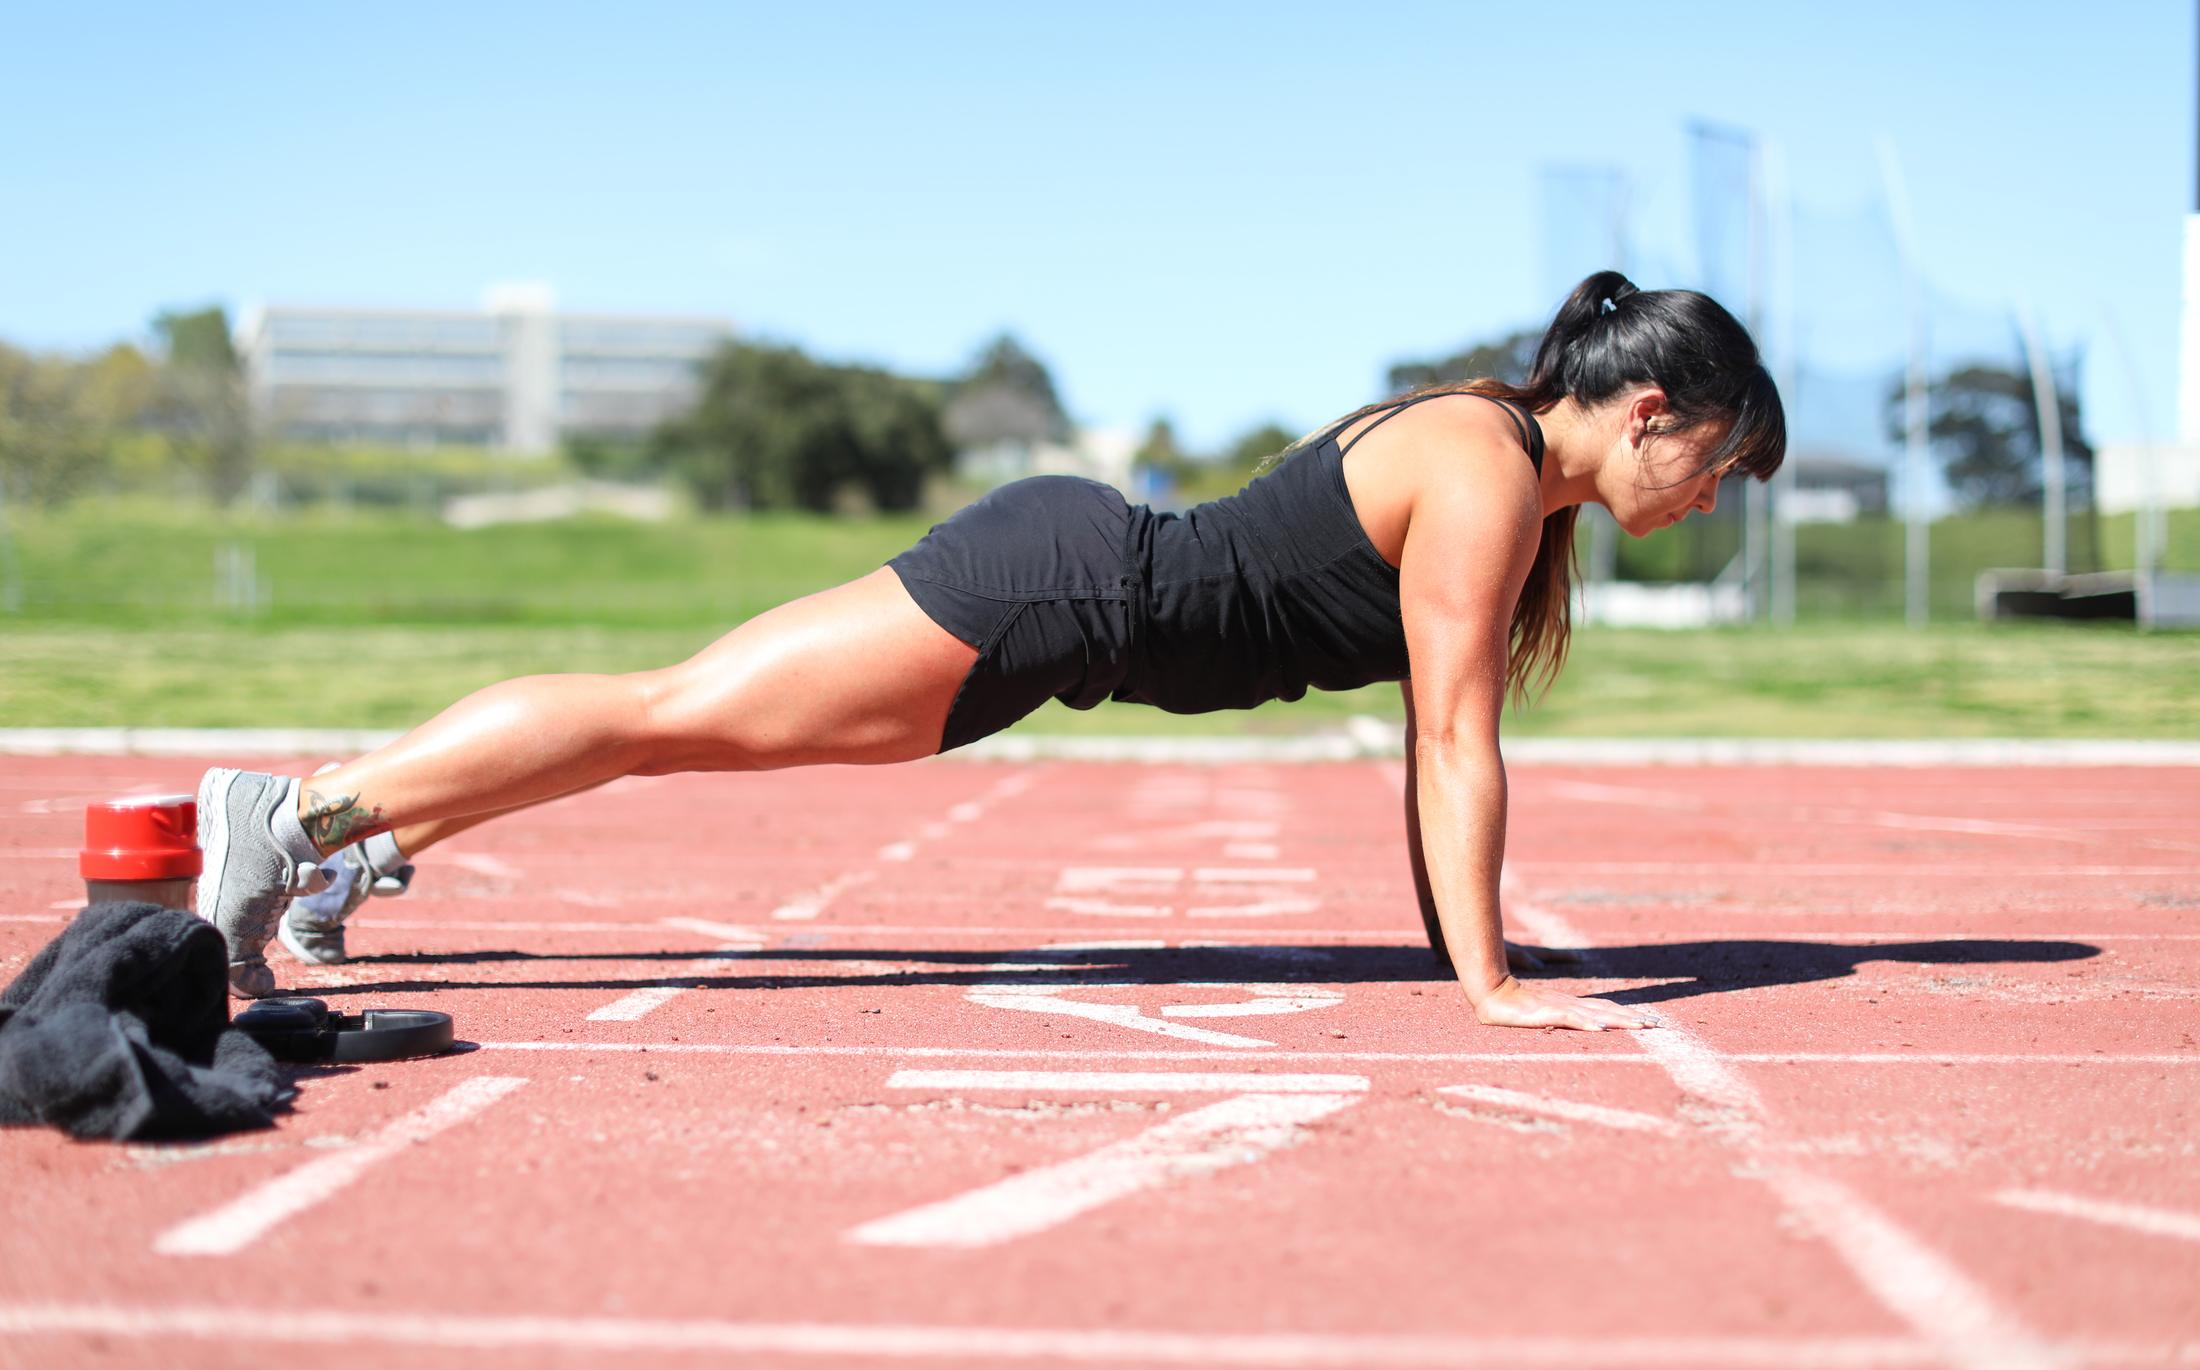 Push-up alternatives to get you ready to drop and gimme 20 | Well+Good